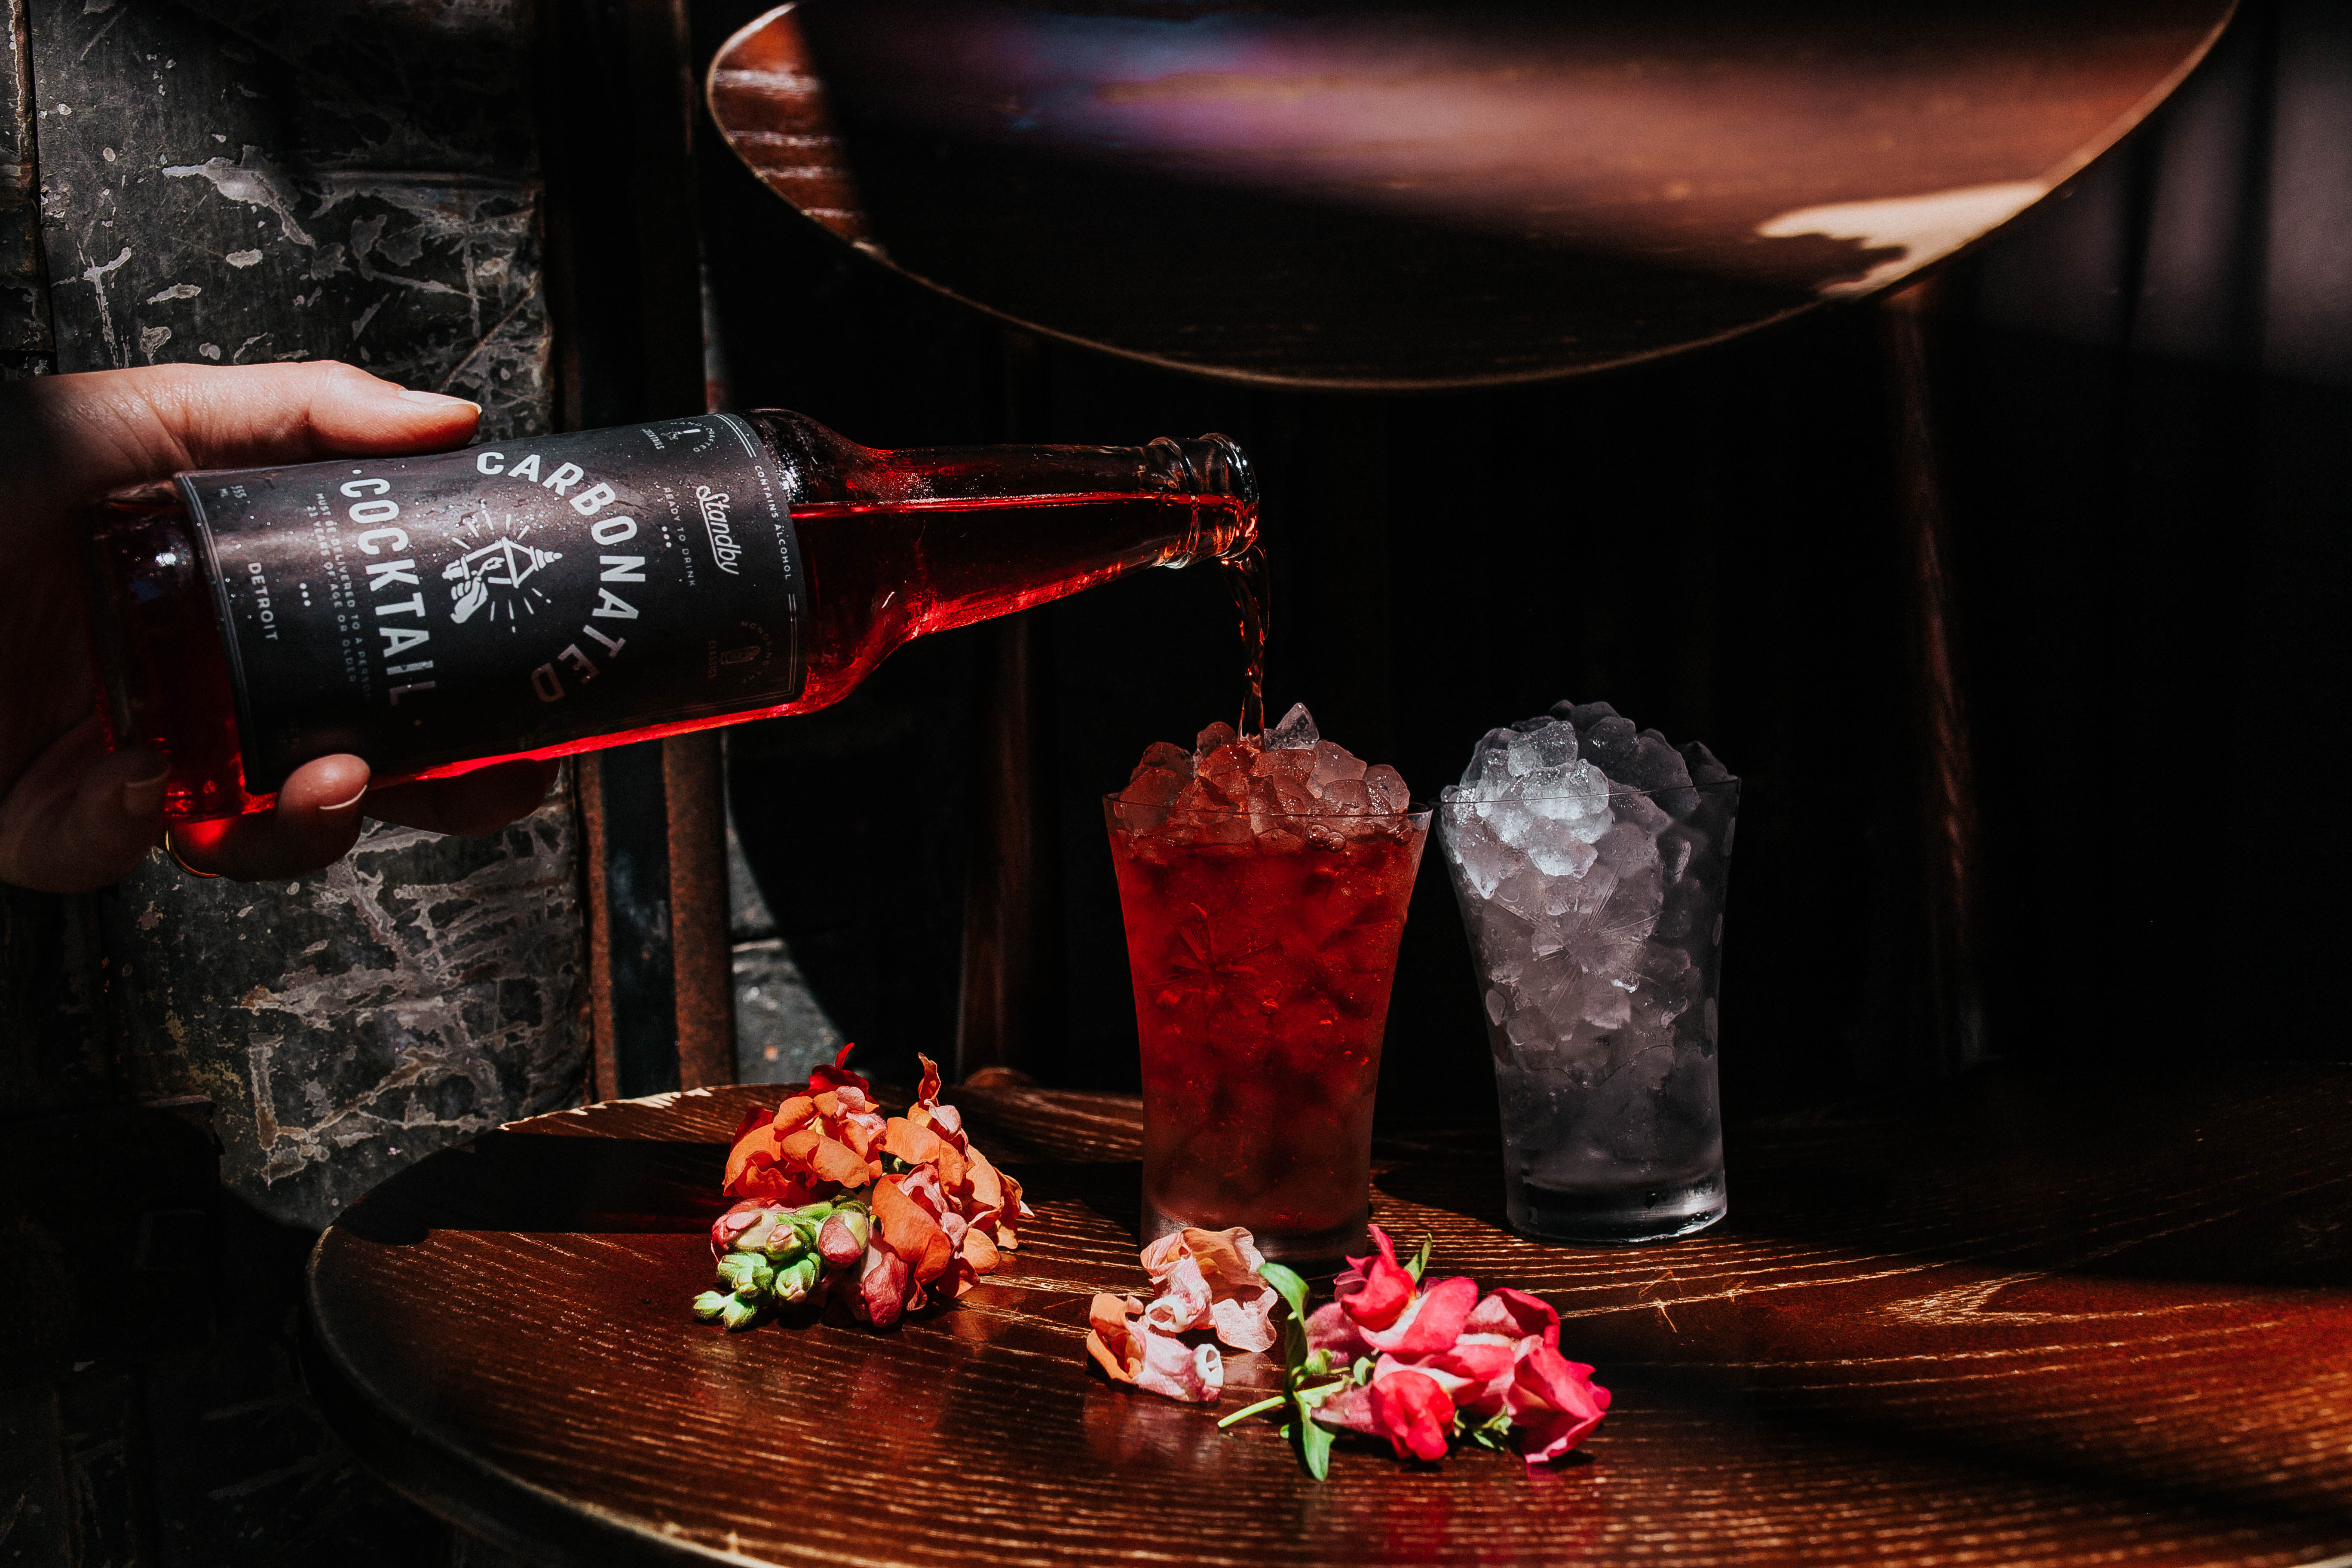 A hand pours a carbonated cocktail from a bottle into a cup of crushed ice next to a second glass of crushed ice with flowers on the table.